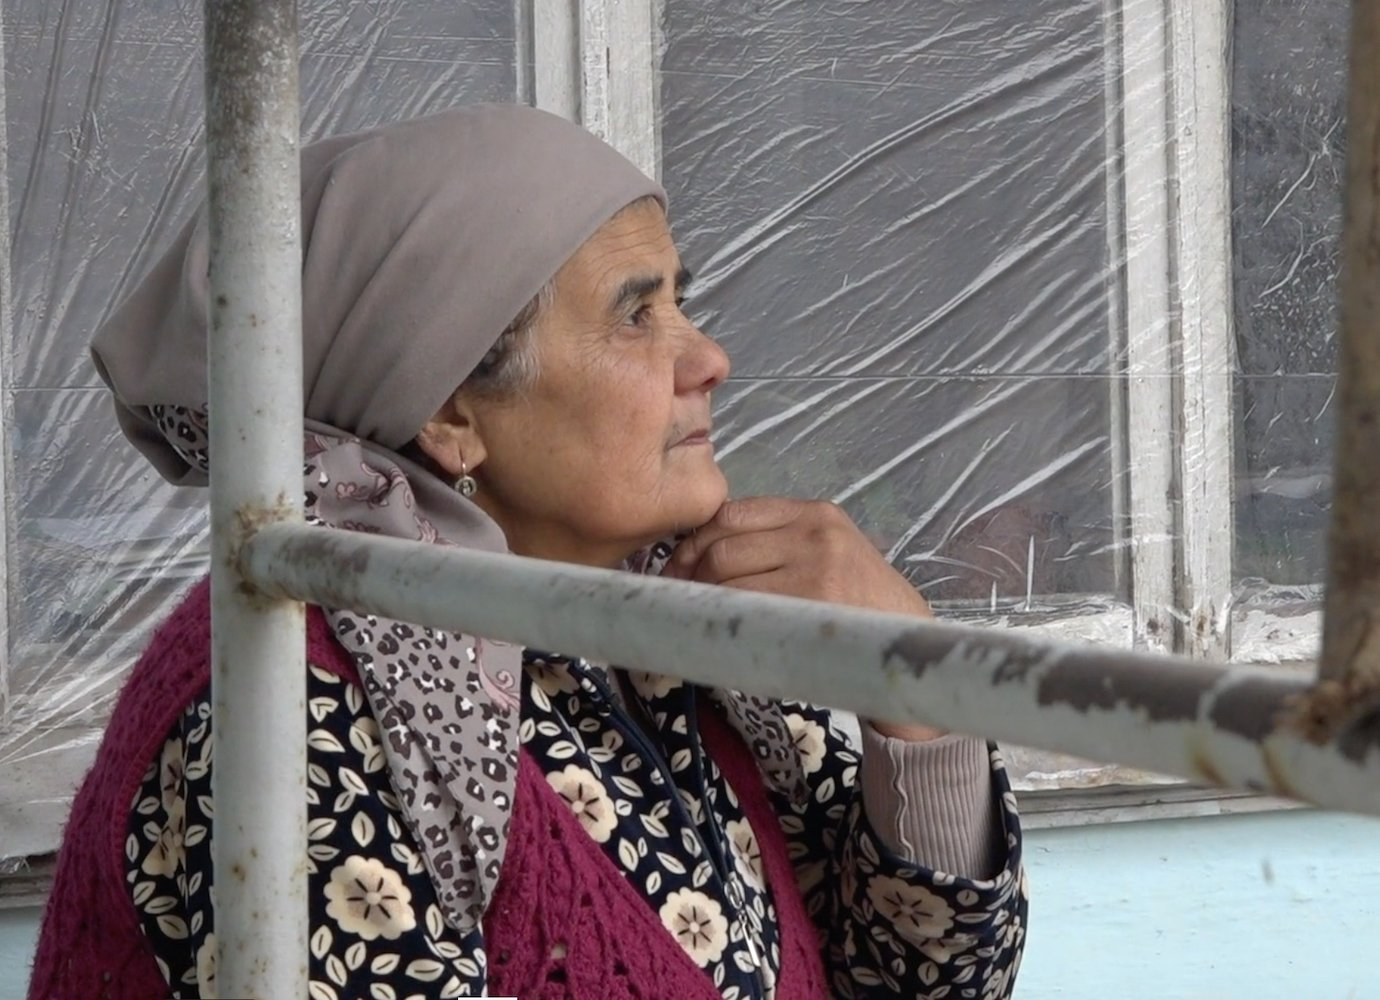 A documentary sheds lights on the Uzbek human rights activist who died serving life imprisonment in Kyrgyzstan